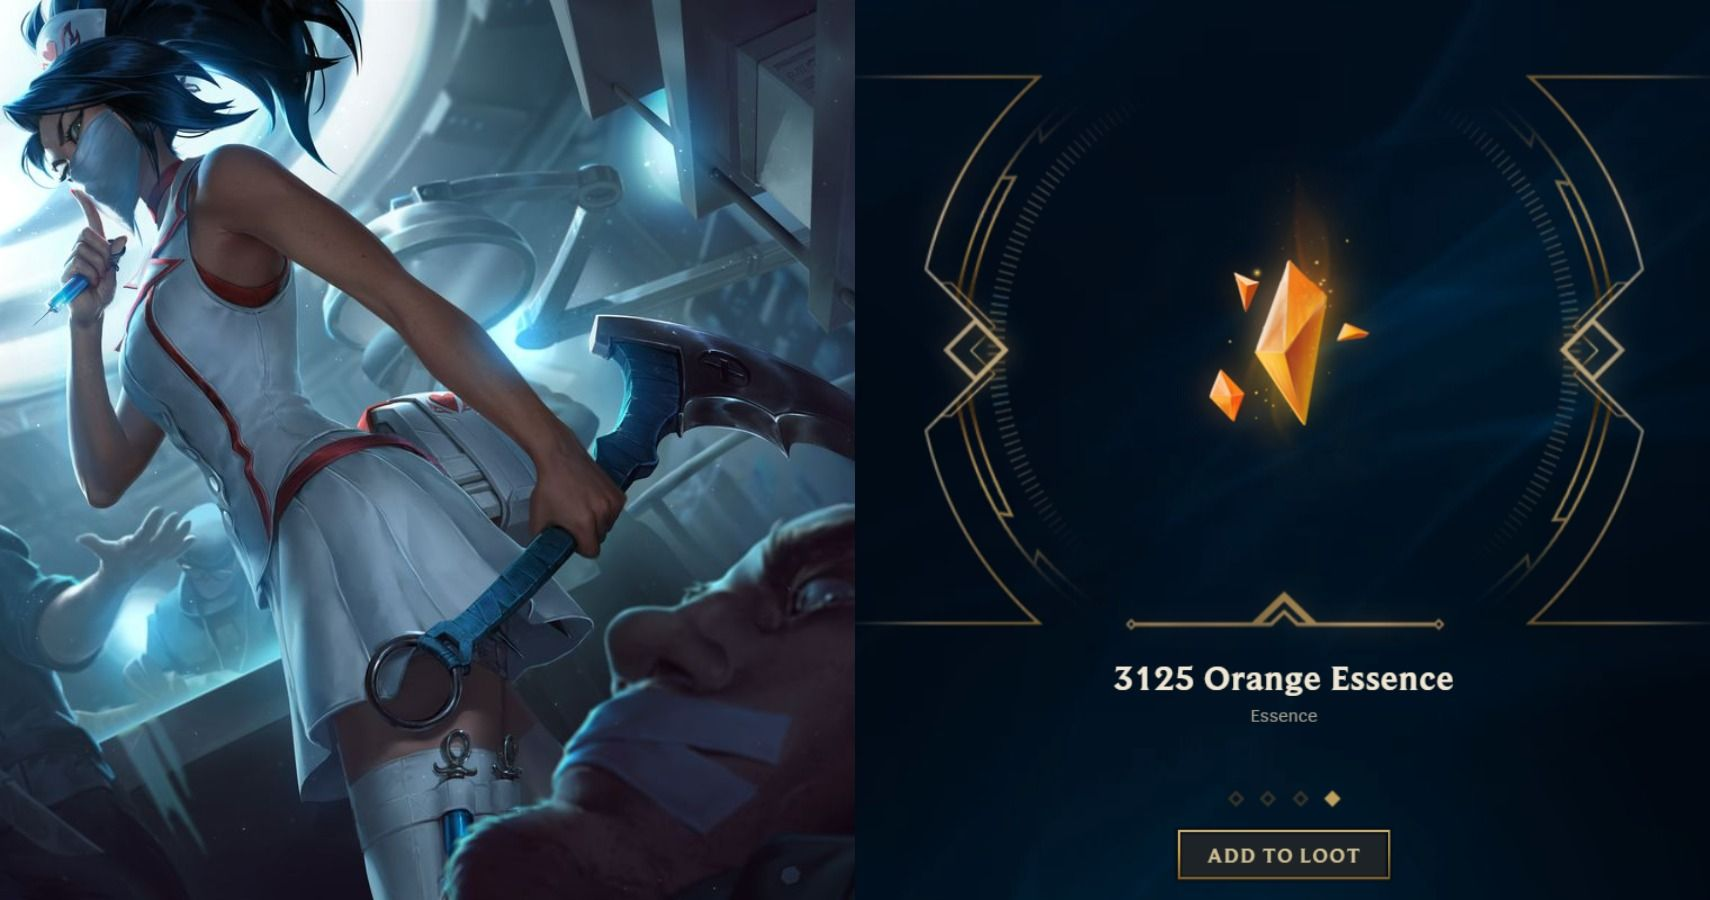 League Of Legends: How To Get Orange Essence - Download League Of Legends: How To Get Orange Essence for FREE - Free Cheats for Games